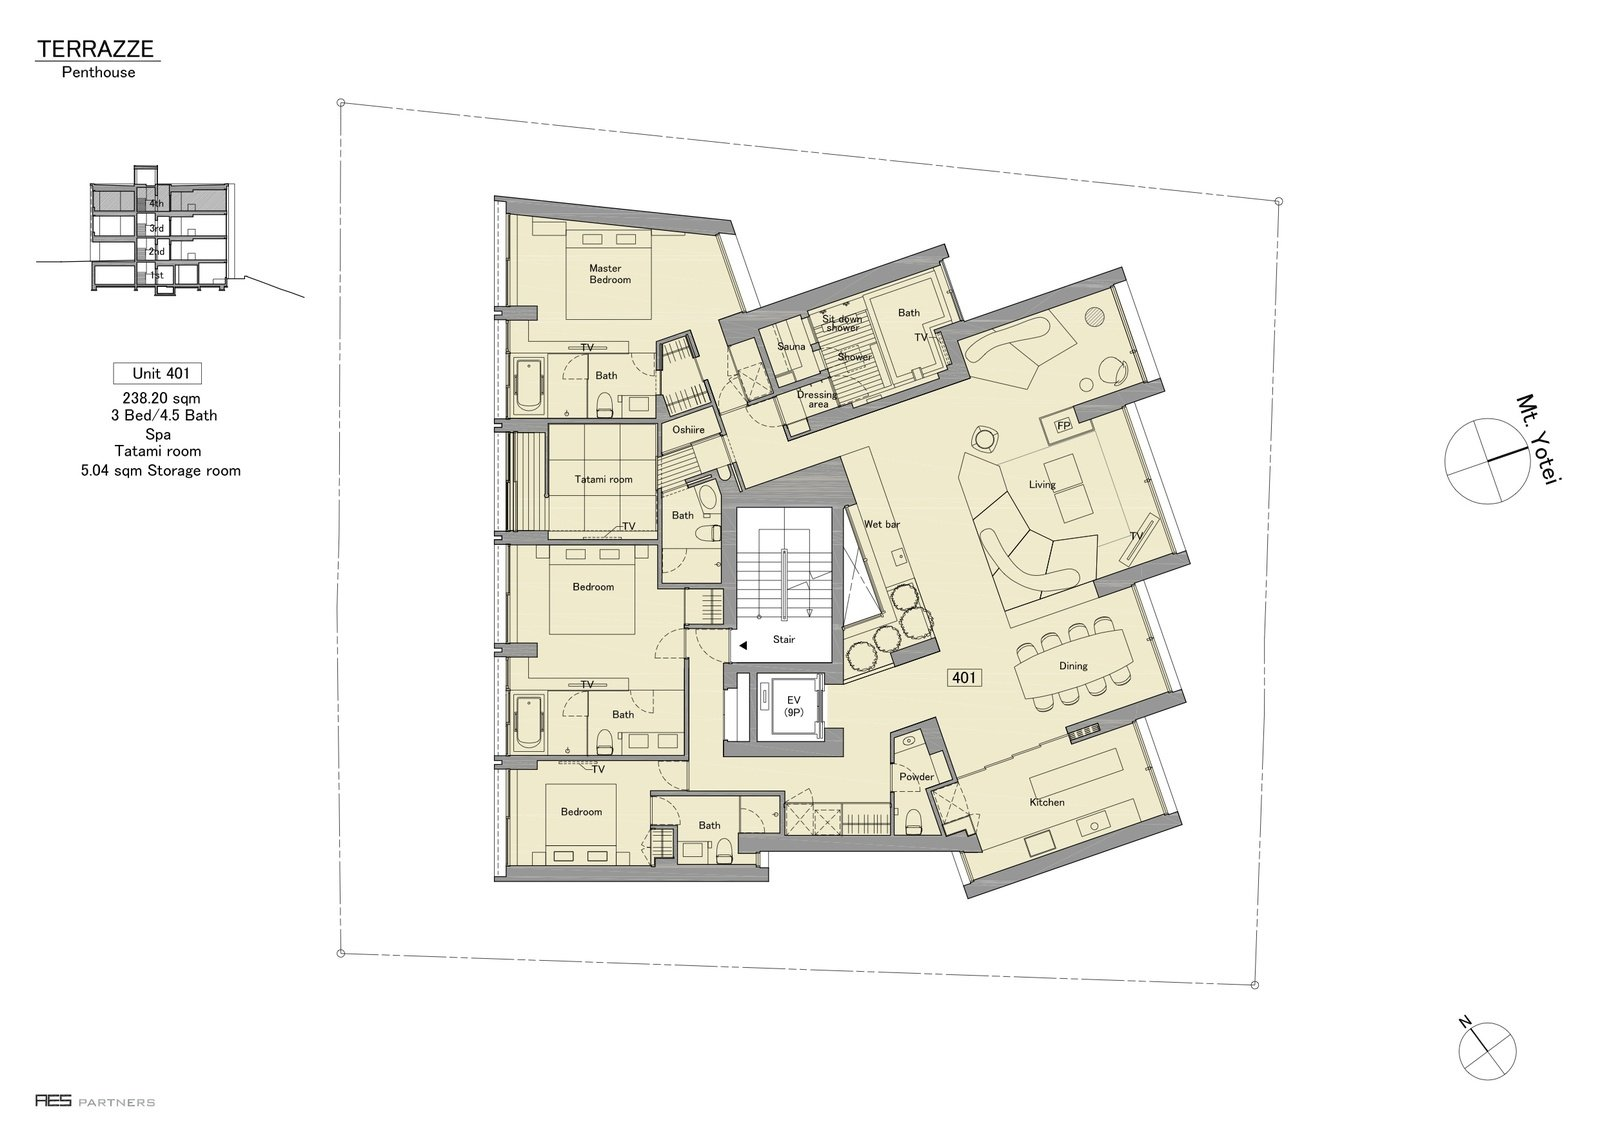 Terrazze penthouse floor plan large